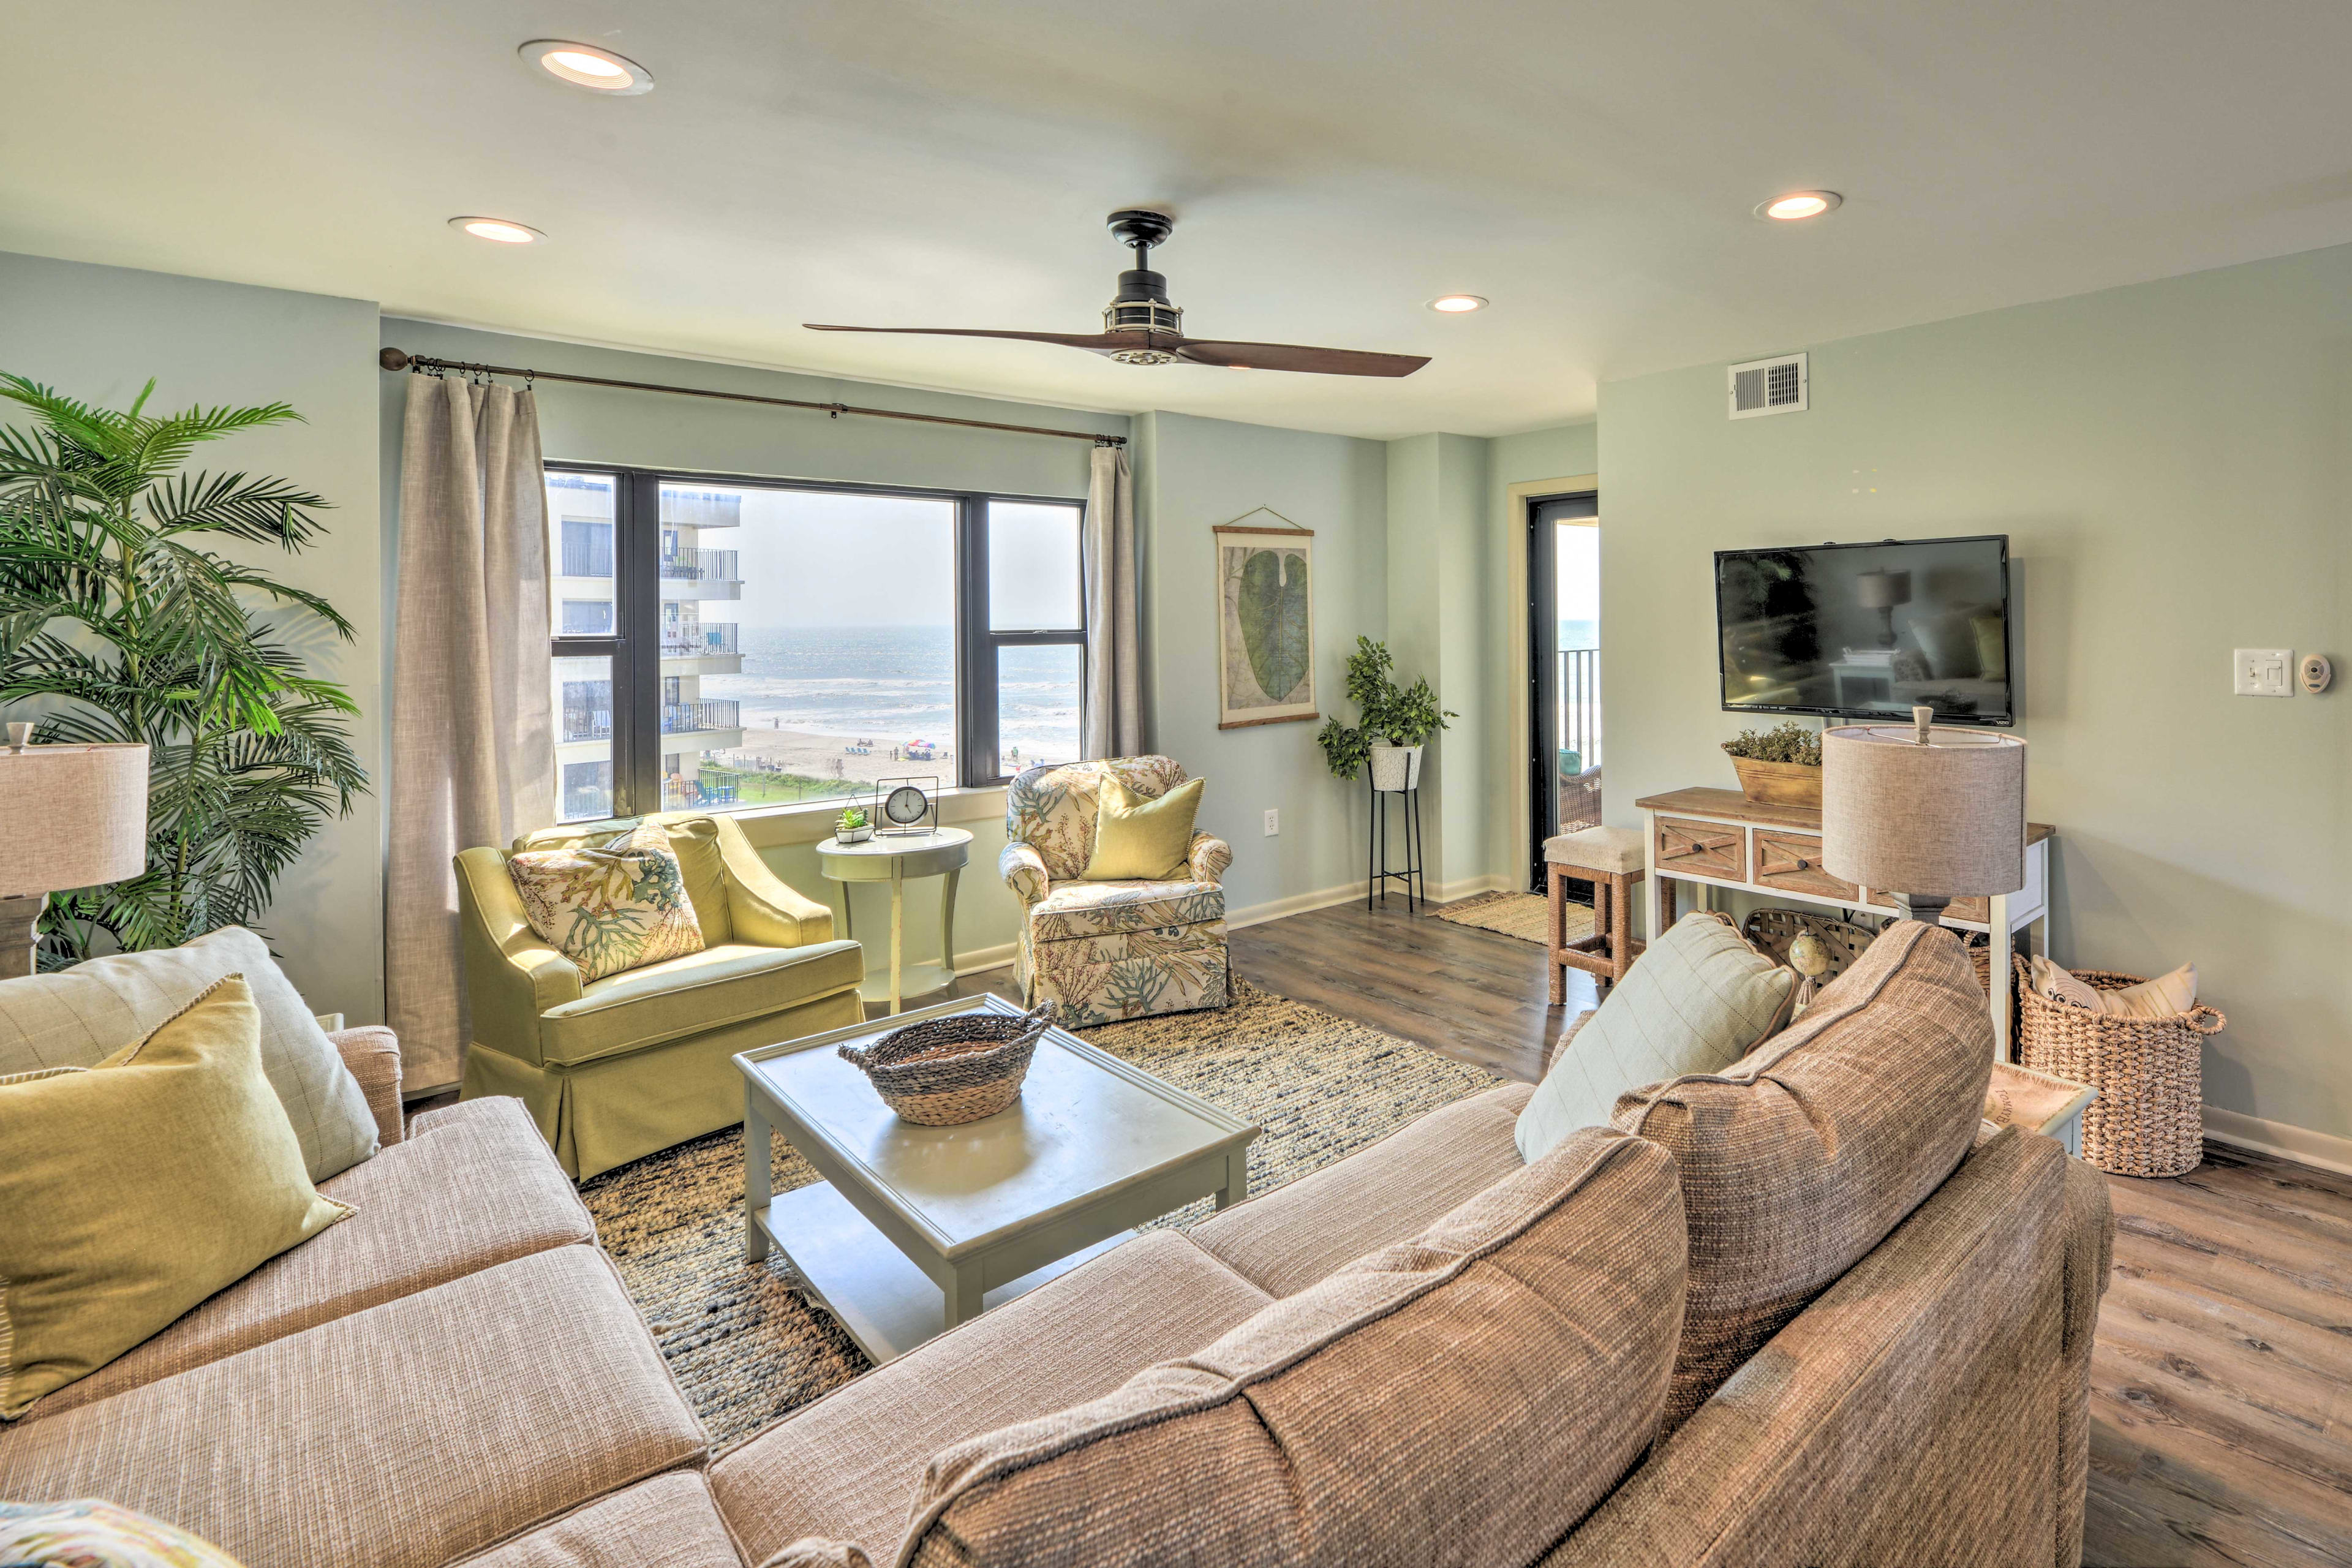 Unwind in the beautiful beach-themed interior of this fourth-story condo!